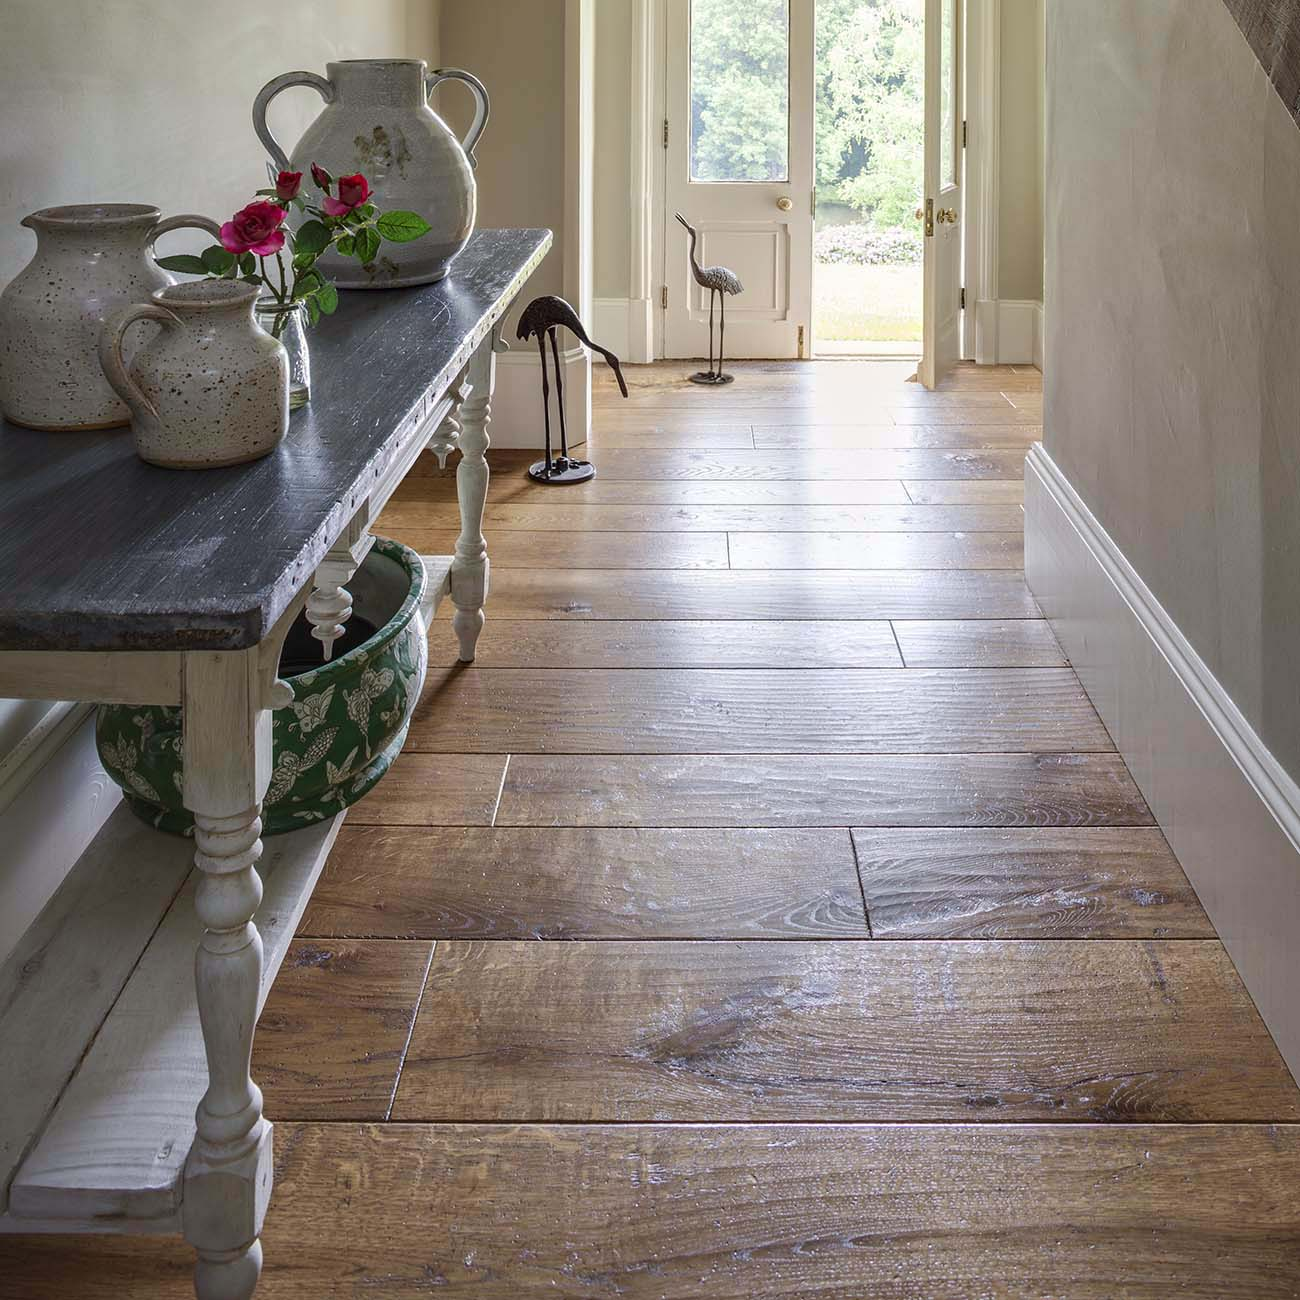 2 Victorian traditional antique oak floors- mellow.jpg